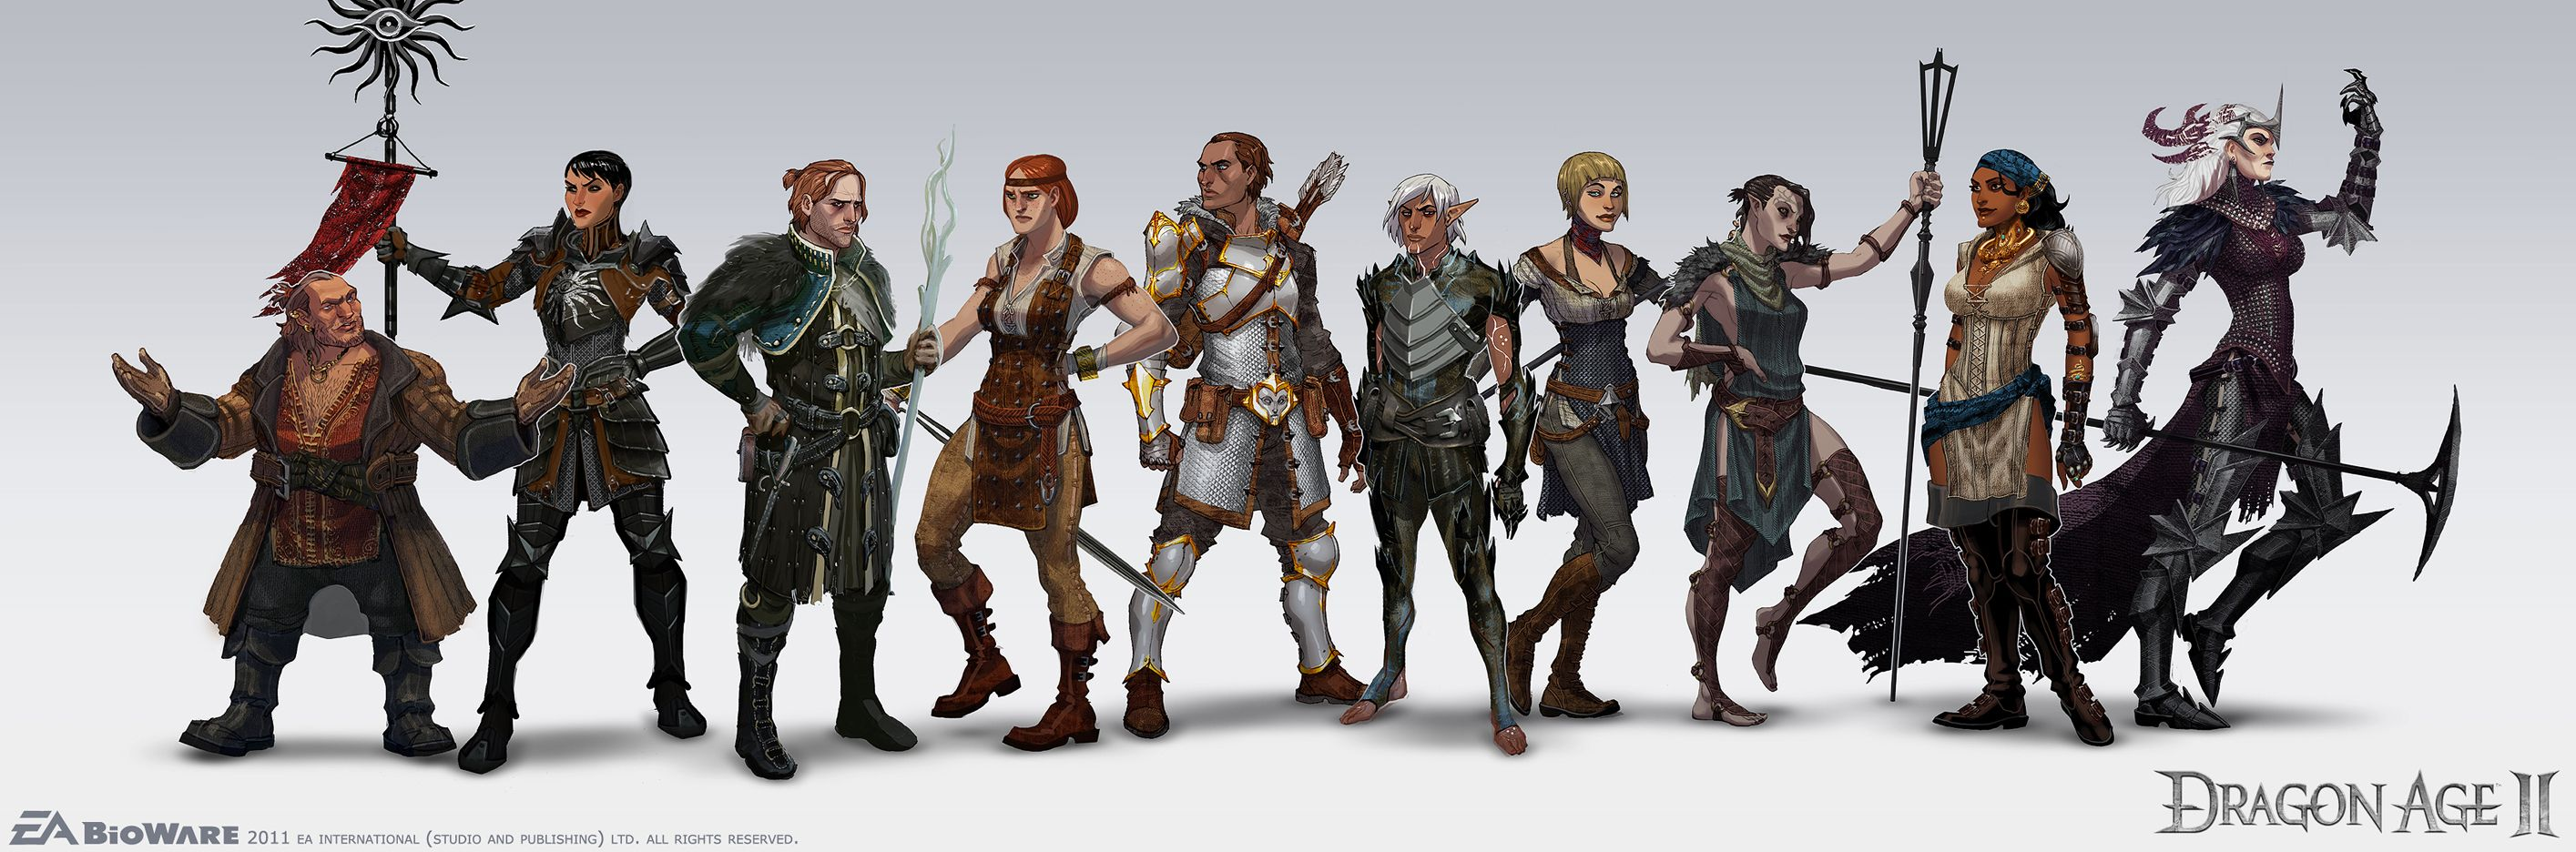 Image result for dragon age 2 characters